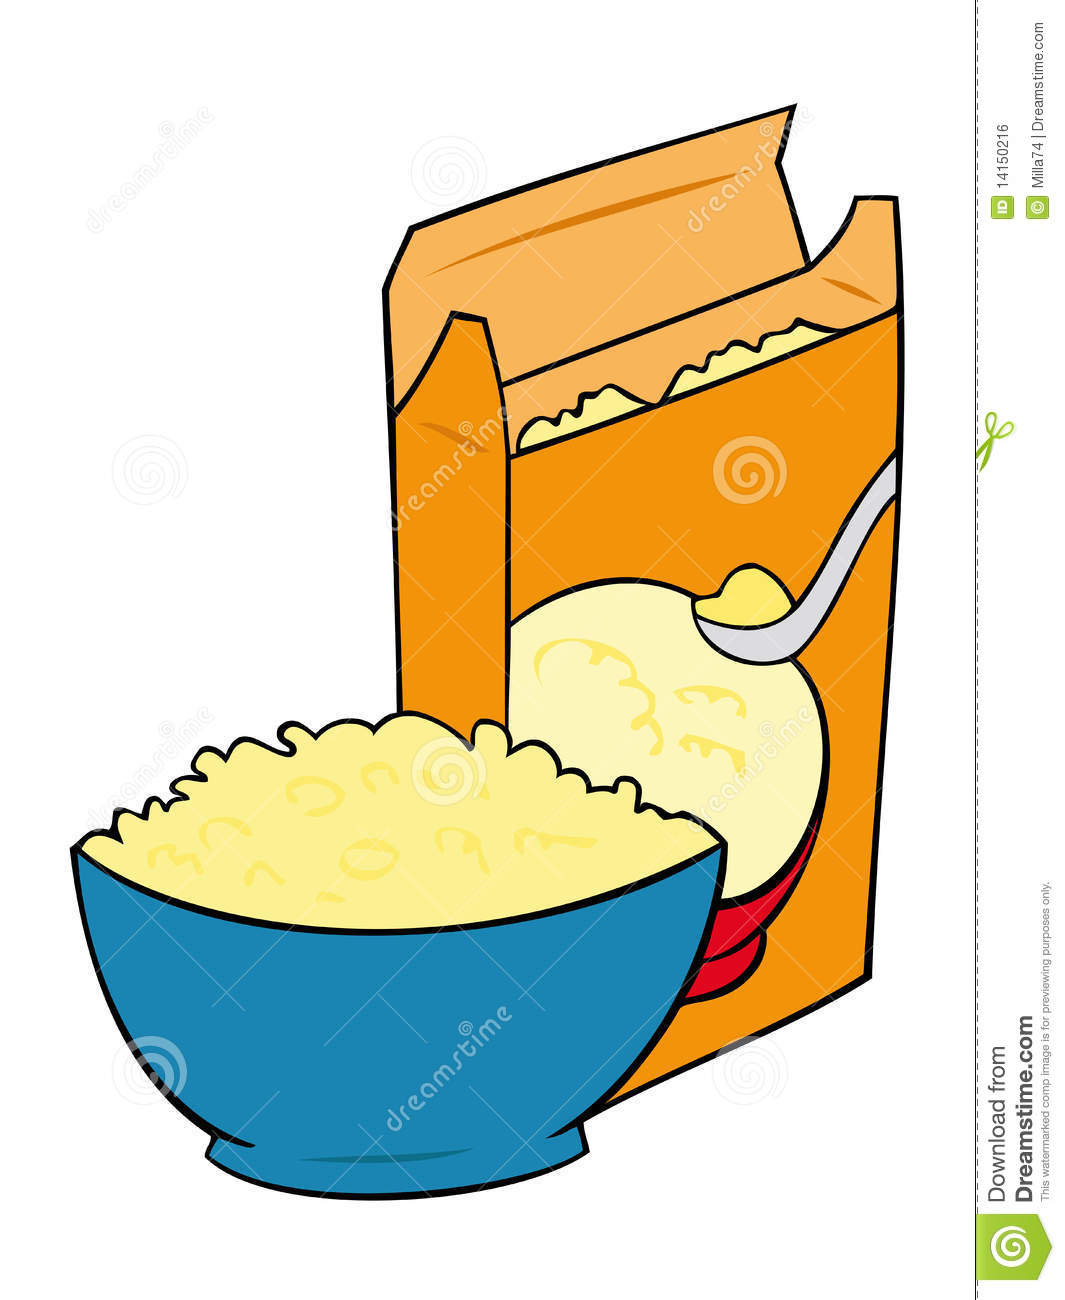 Cornflakes In A Bowl With Cereal Box Stock Vector Illustration